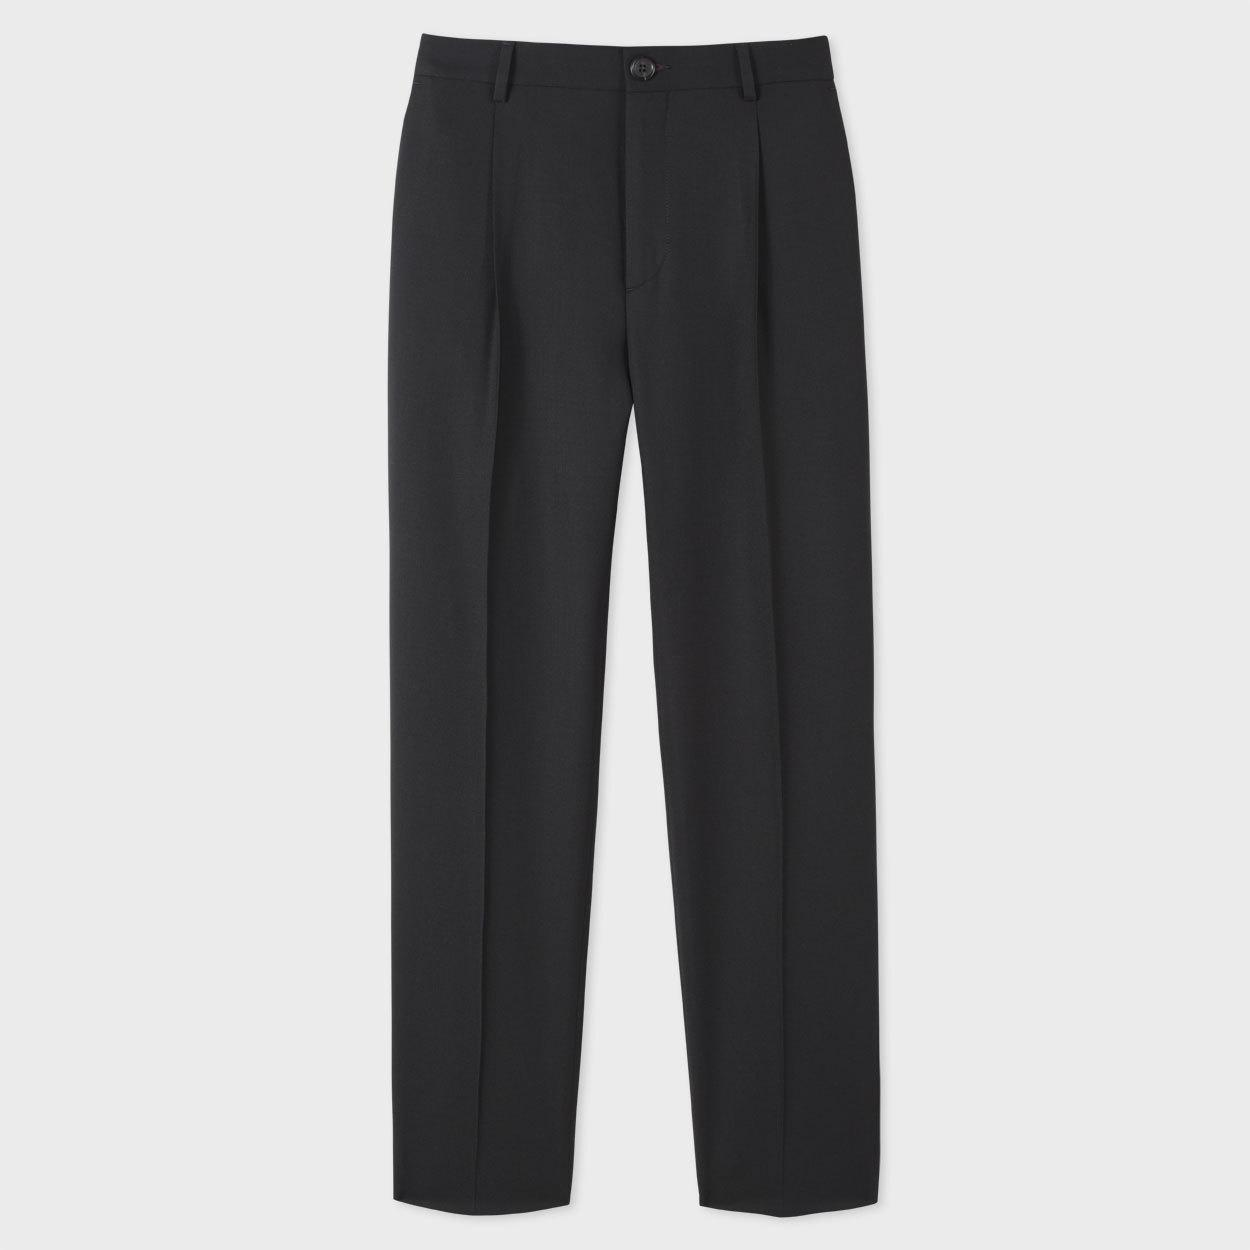 Paul Smith Fur Men's Slim-fit Black Wool Pleated Trousers for Men